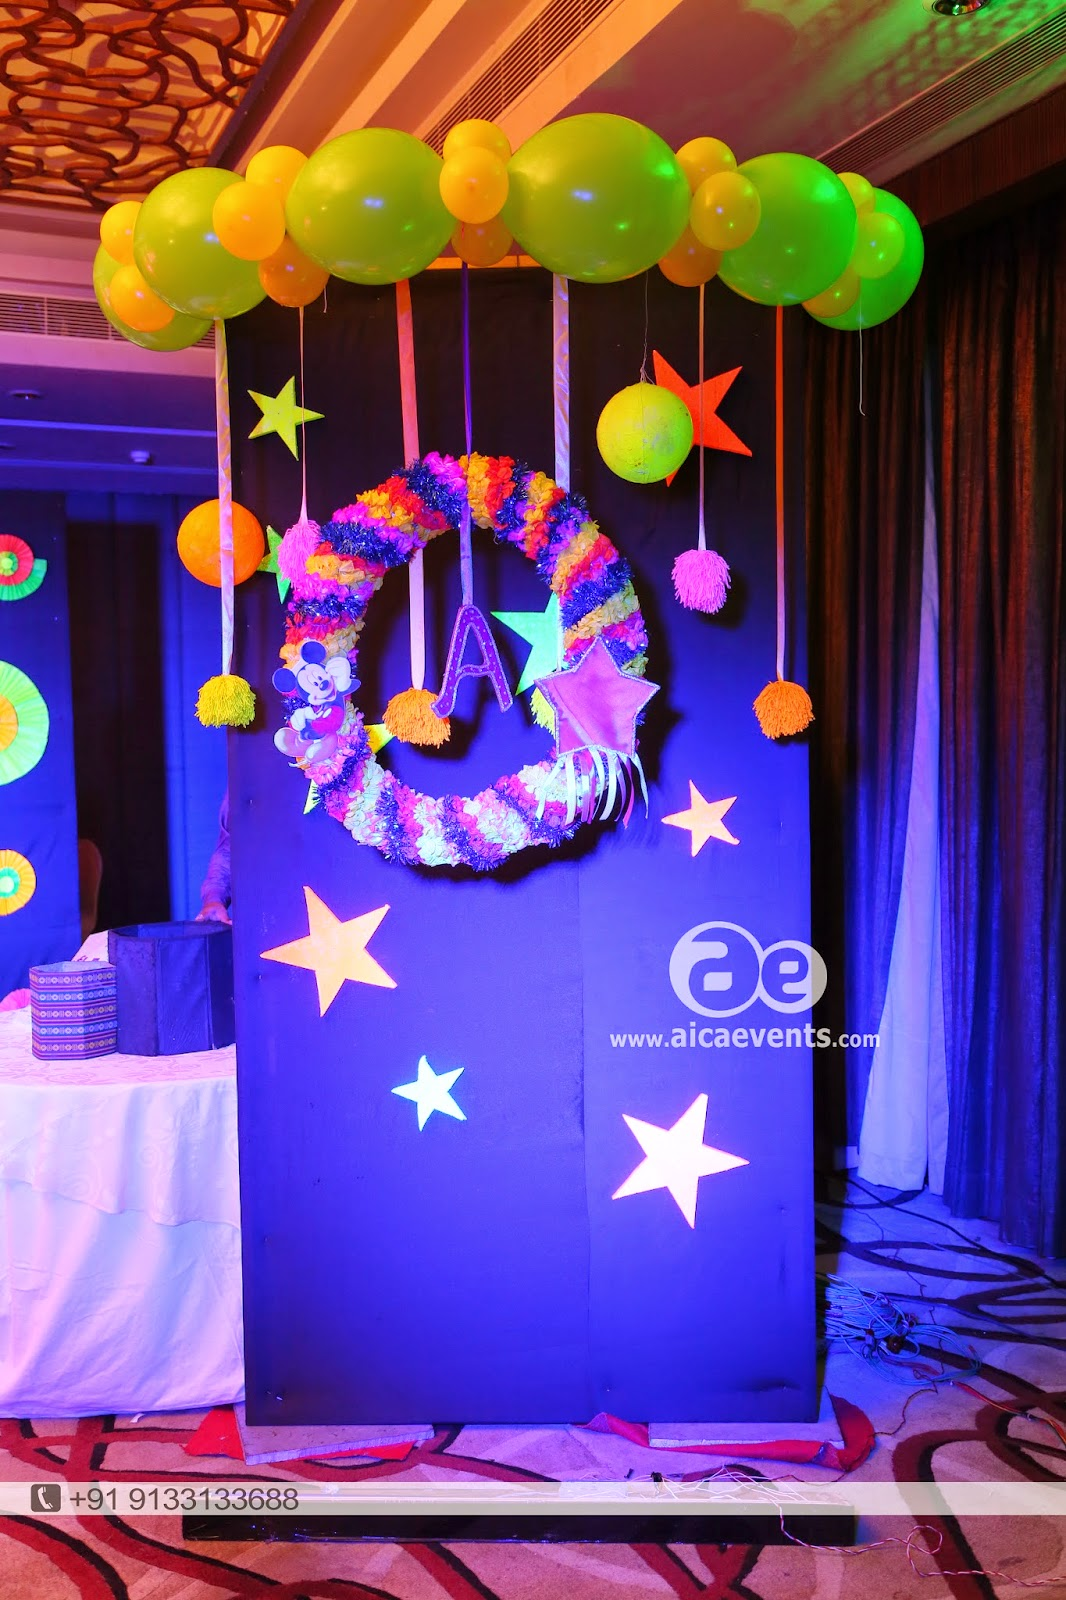 Aicaevents balloon wall stage backdrop decoration for Backdrops for stage decoration